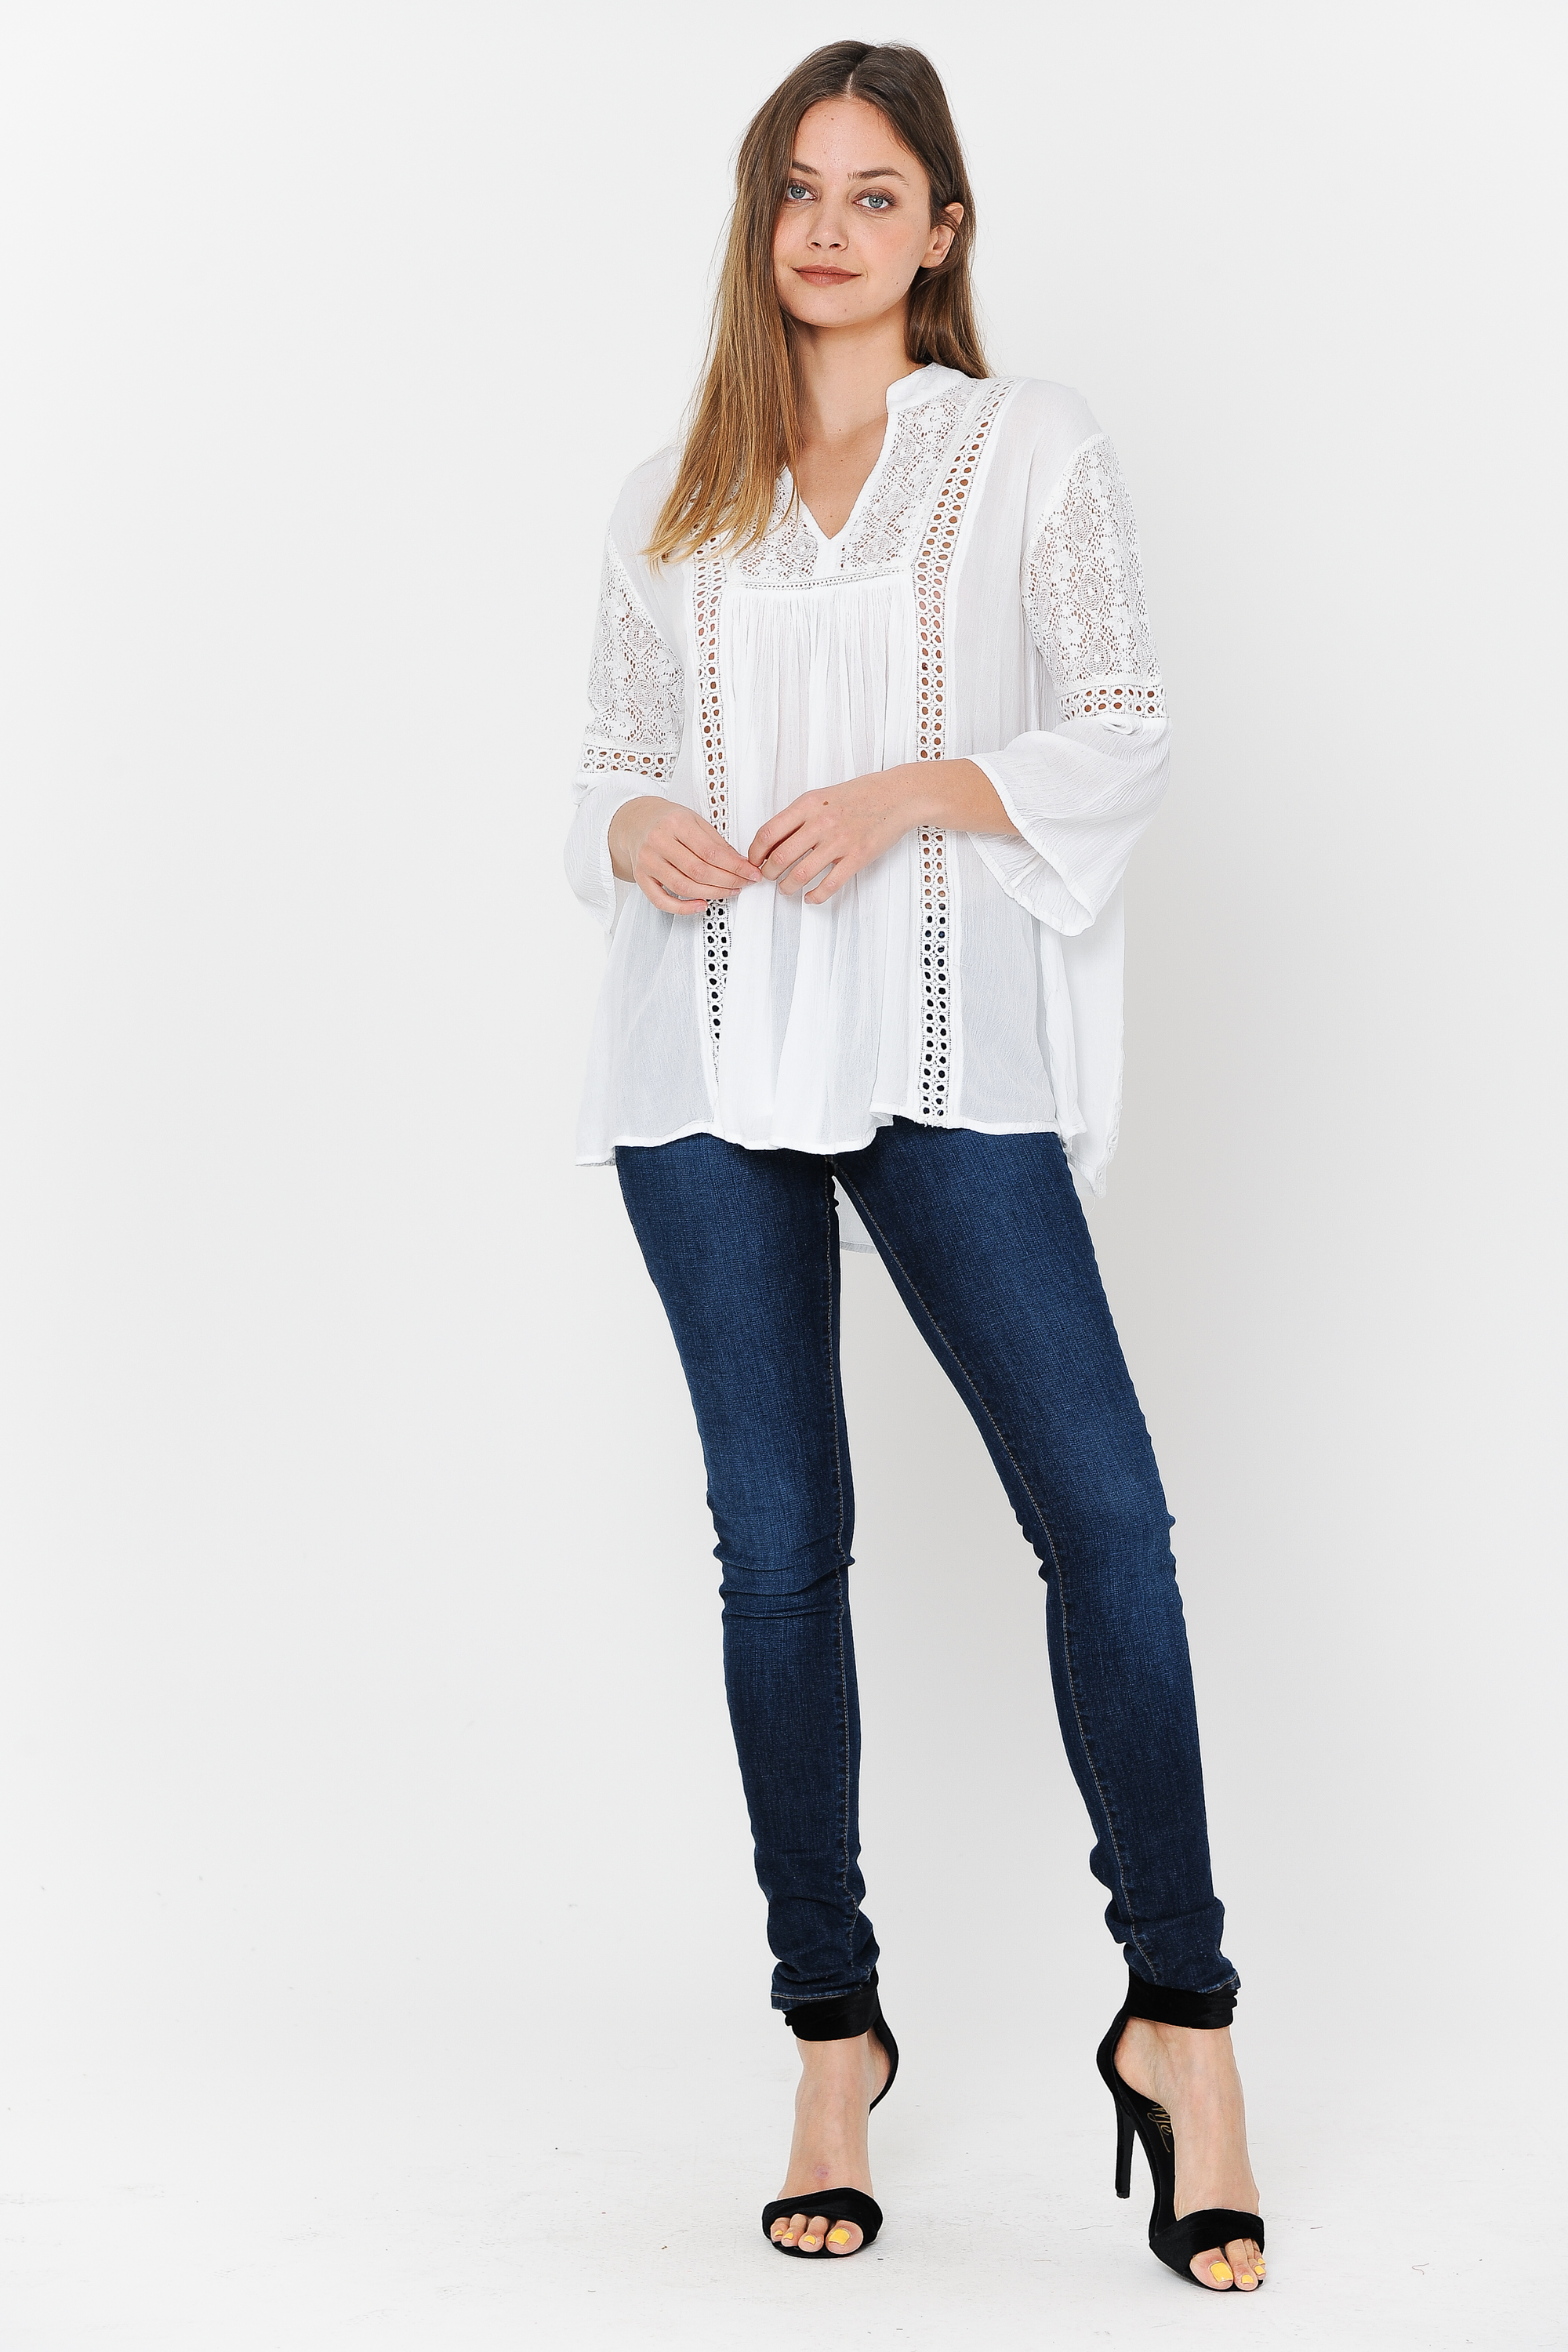 Tunic 3/4 Sleeves Crochet & lace Work White